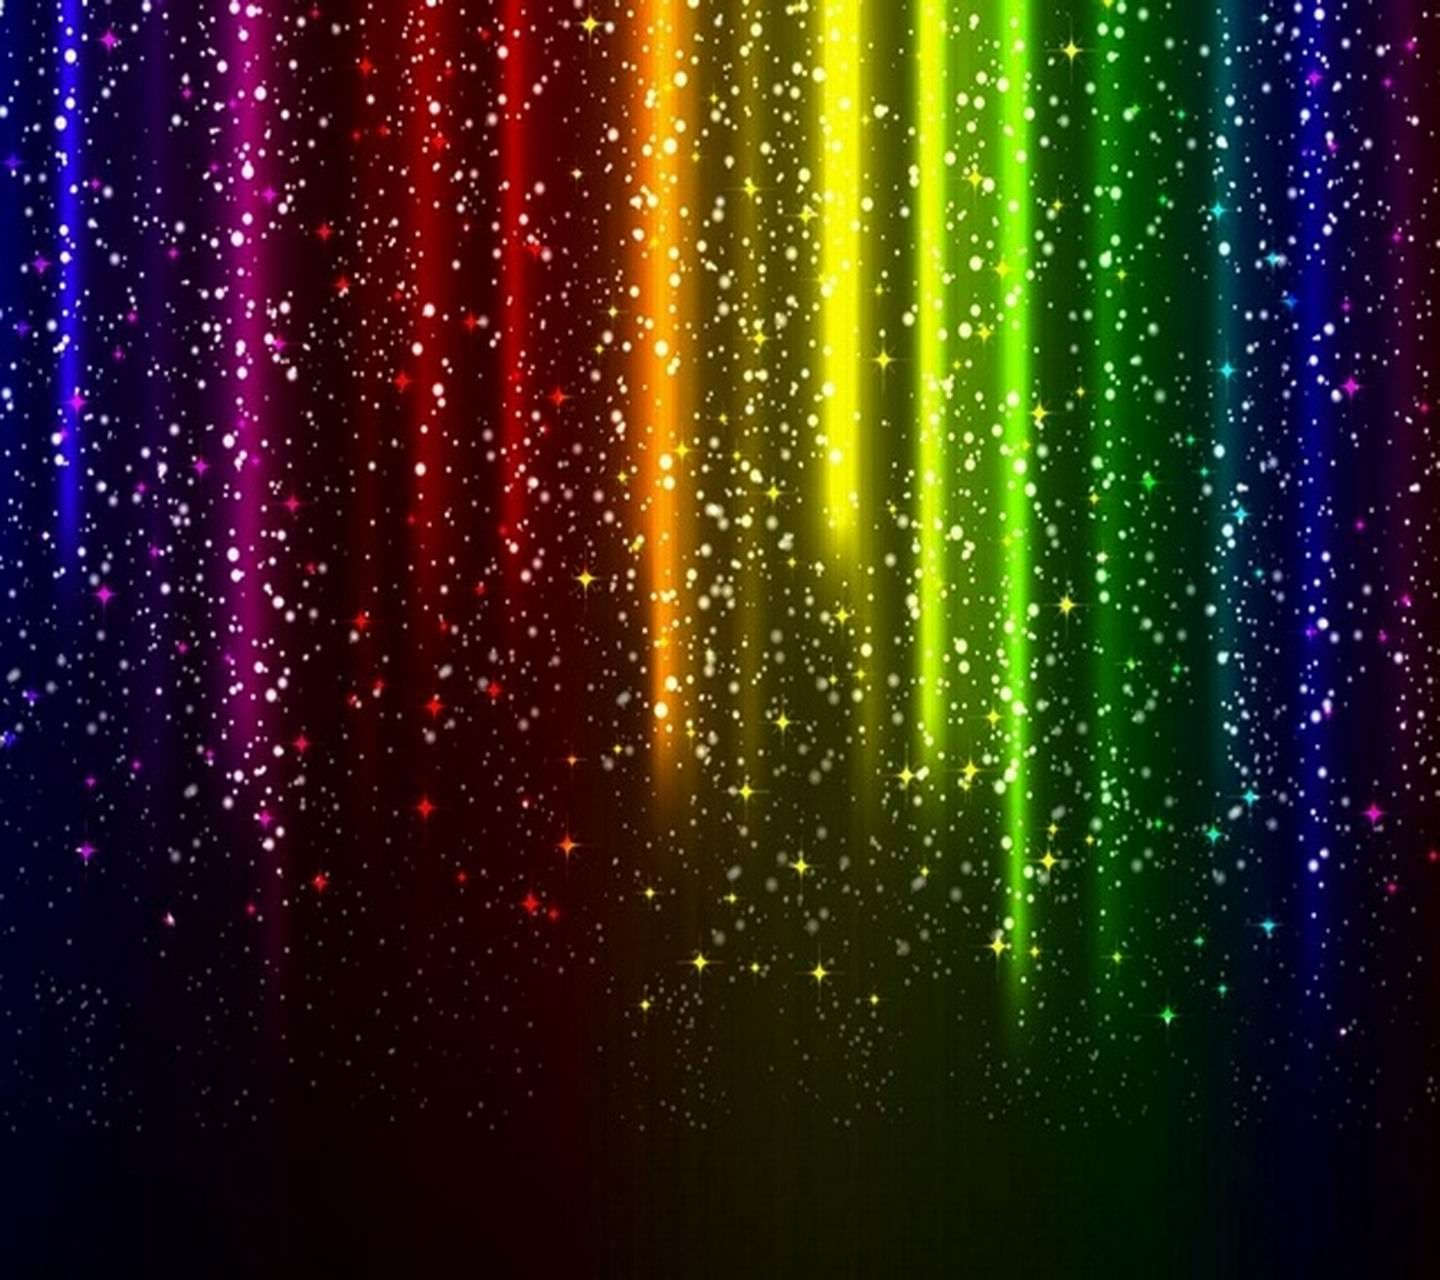 Colorful Iphone Wallpaper: Free 1440X1280 Colorful Sparkle